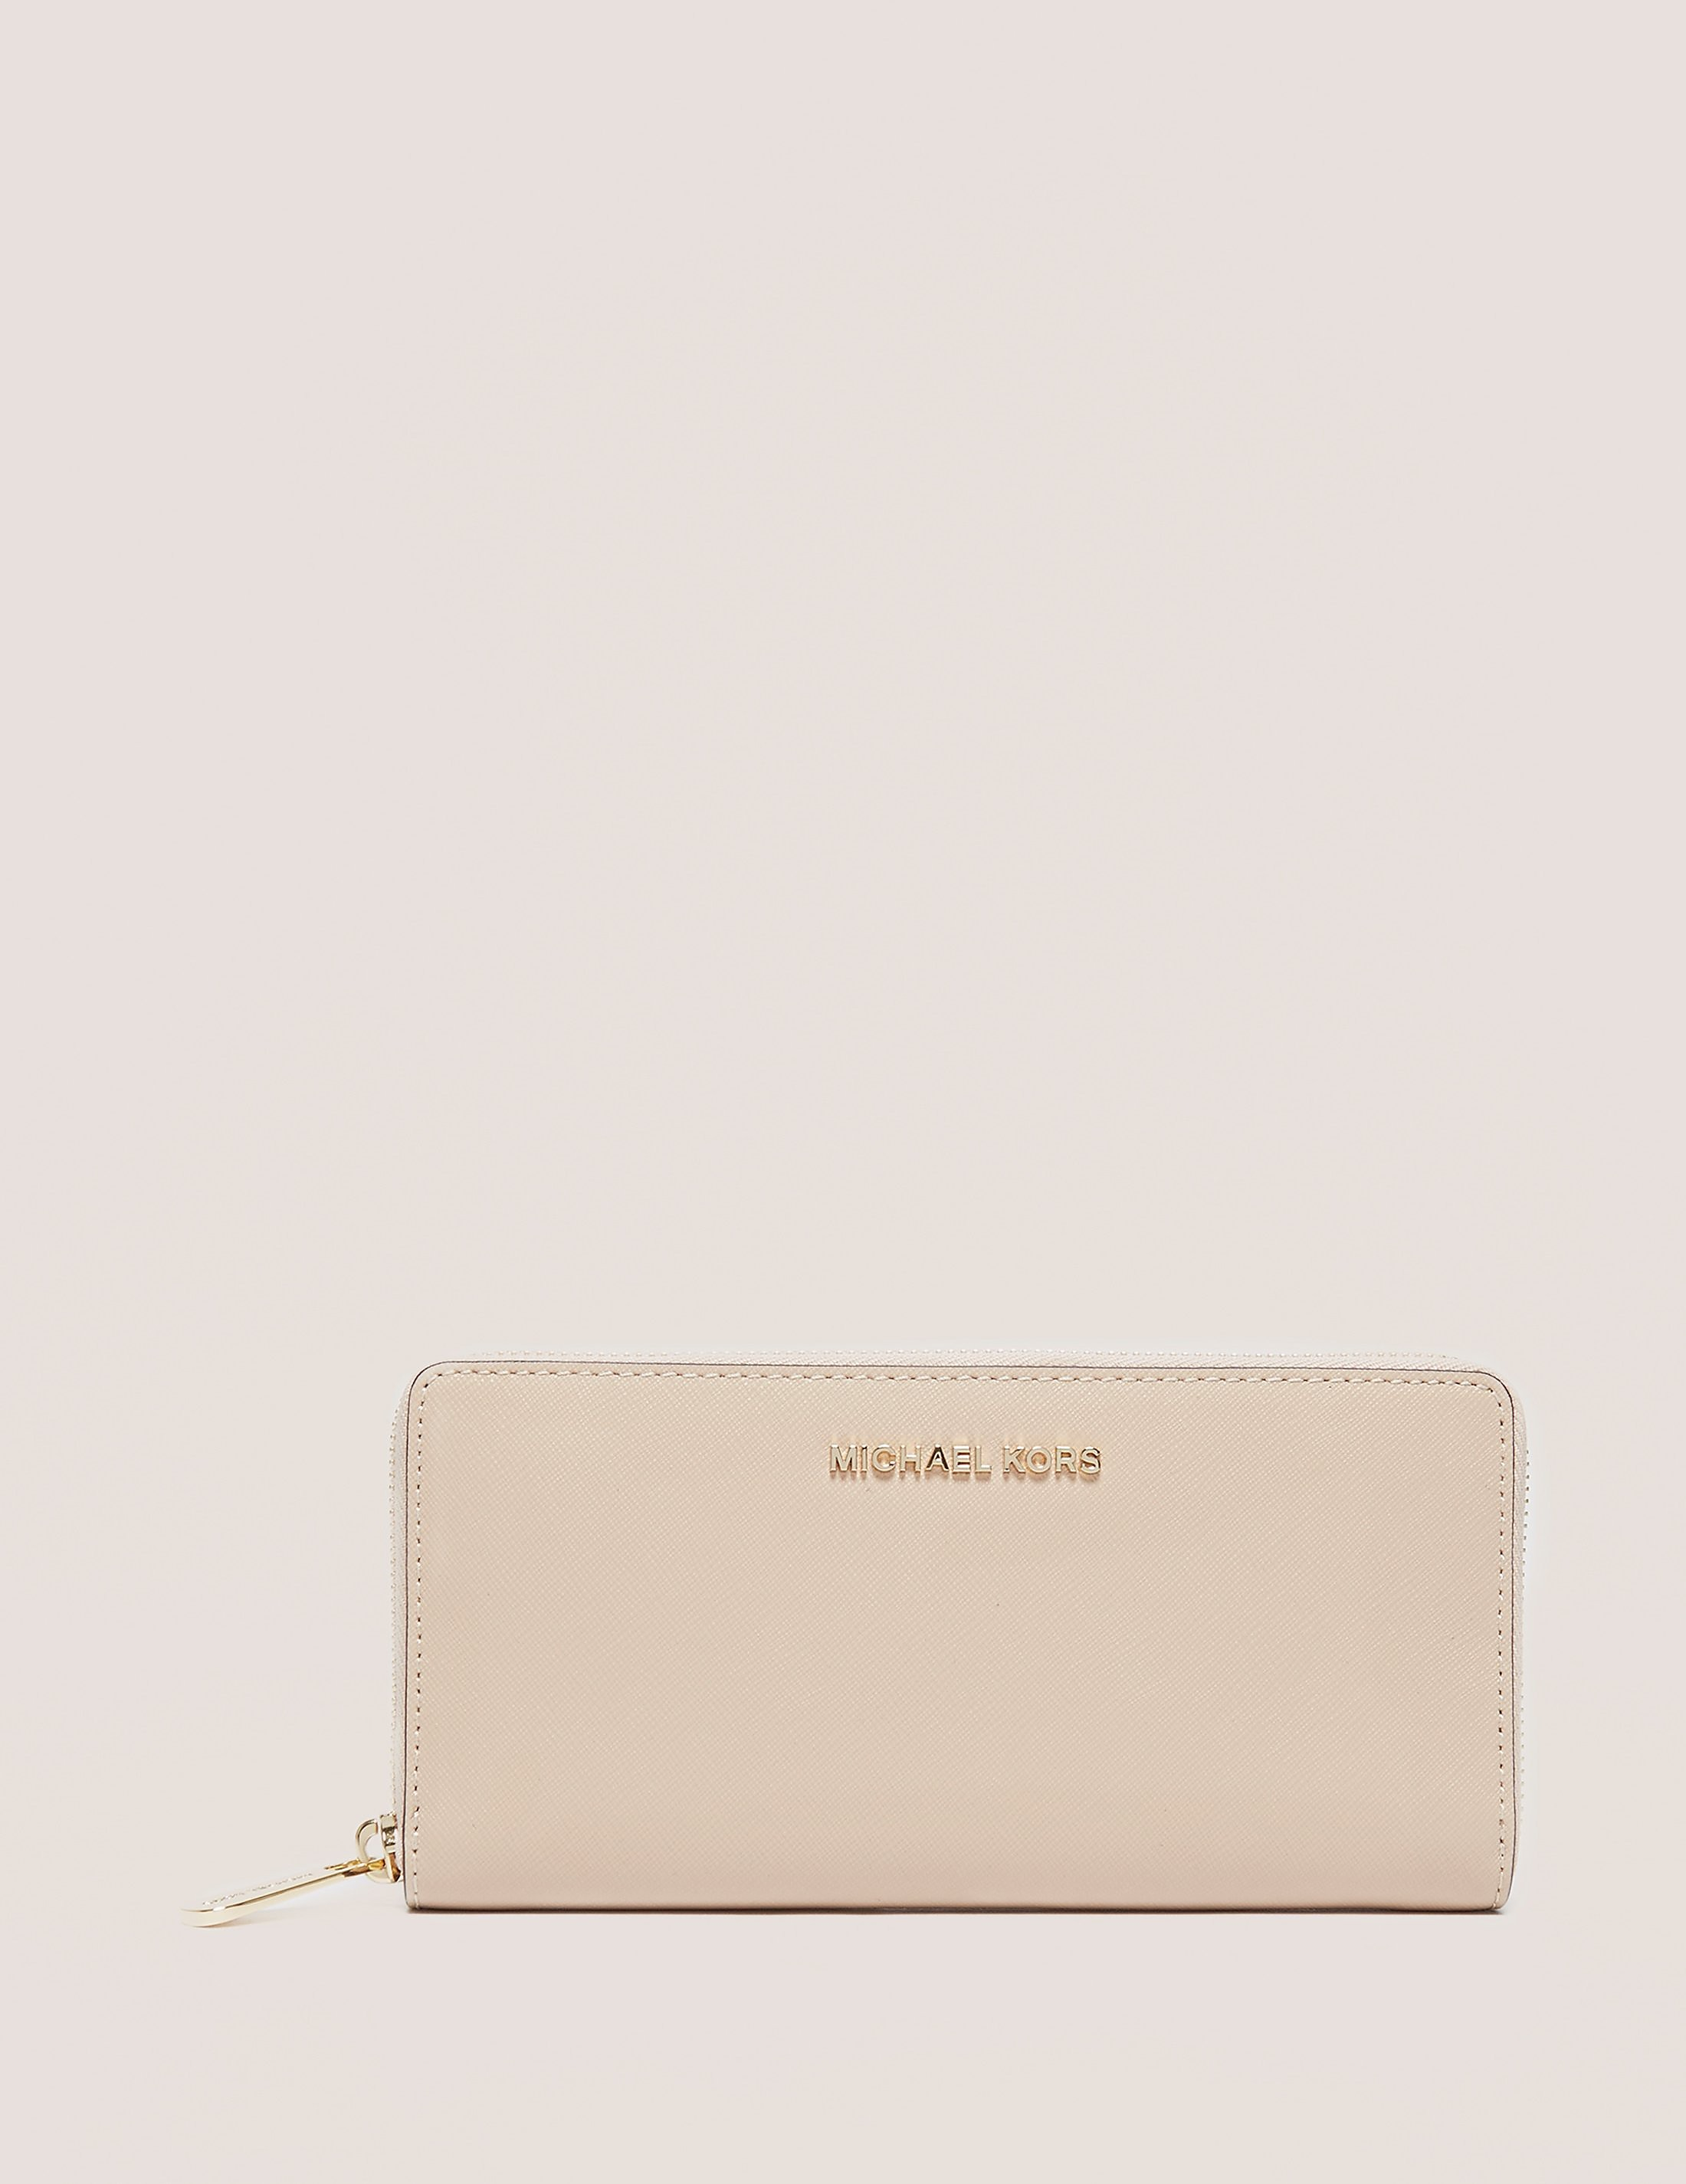 Michael Kors Jet Set Travel Continetal Wallet